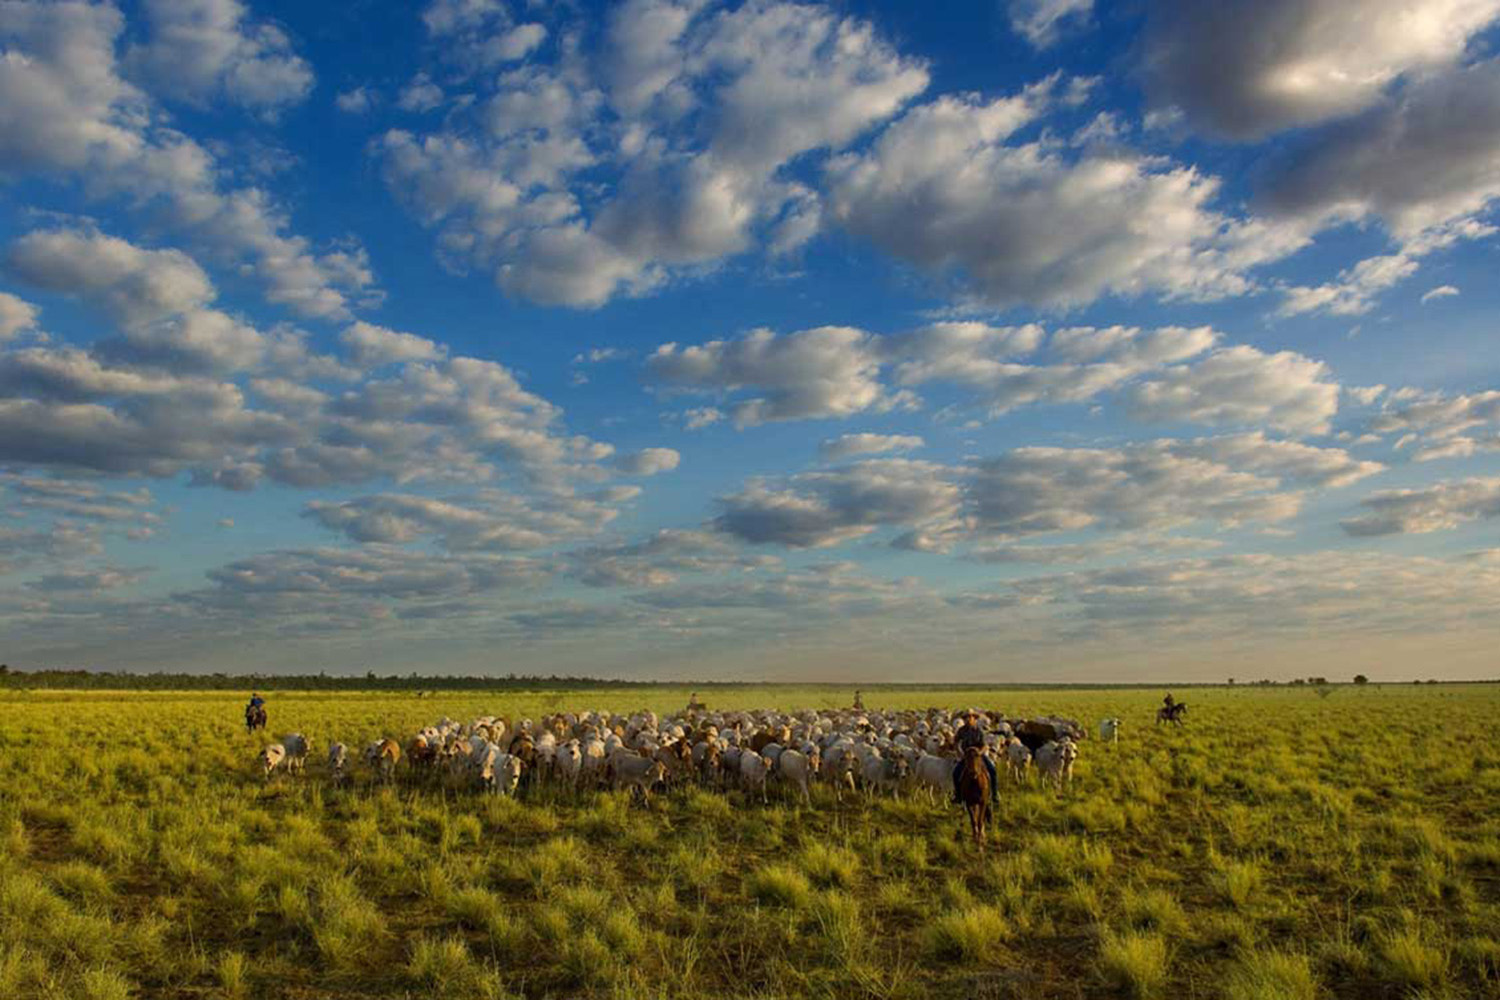 image of AARONTAIT COPYRIGHTED 2014 366 RURAL PHOTOGRAPHER FARM LIFE AGRICULTURE WOOL BEEF STOCKMAN MUSTER CATTLE FARM AUSTRALIAN MUSTER EPIC BIG SKY MOB GULF COUNTRY